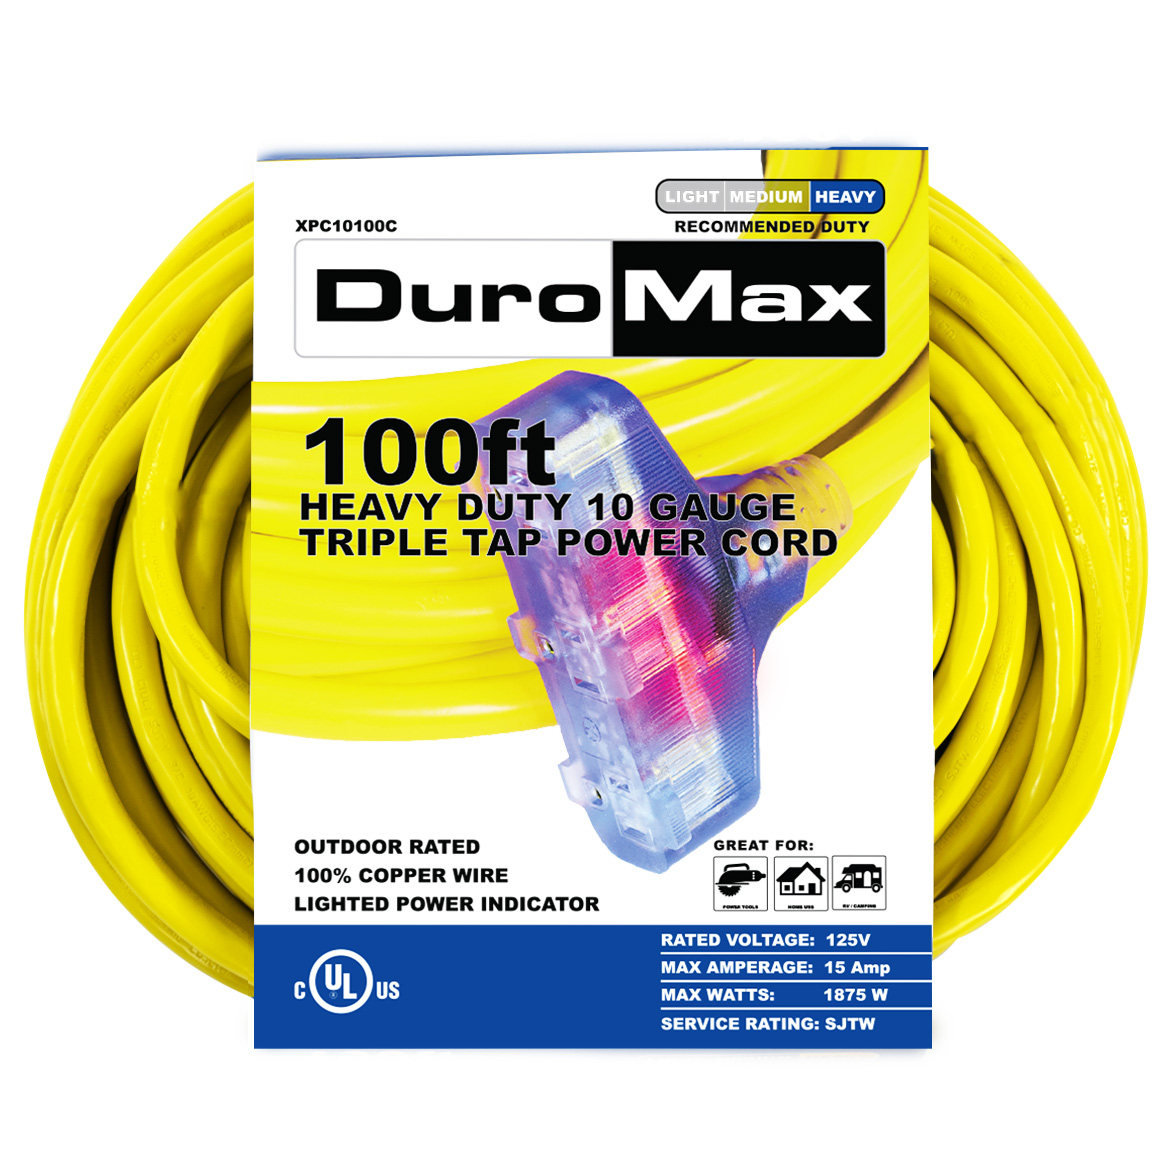 DuroMax XPC10100C 100-Foot 10 Gauge Triple Tap Extension Power Cord